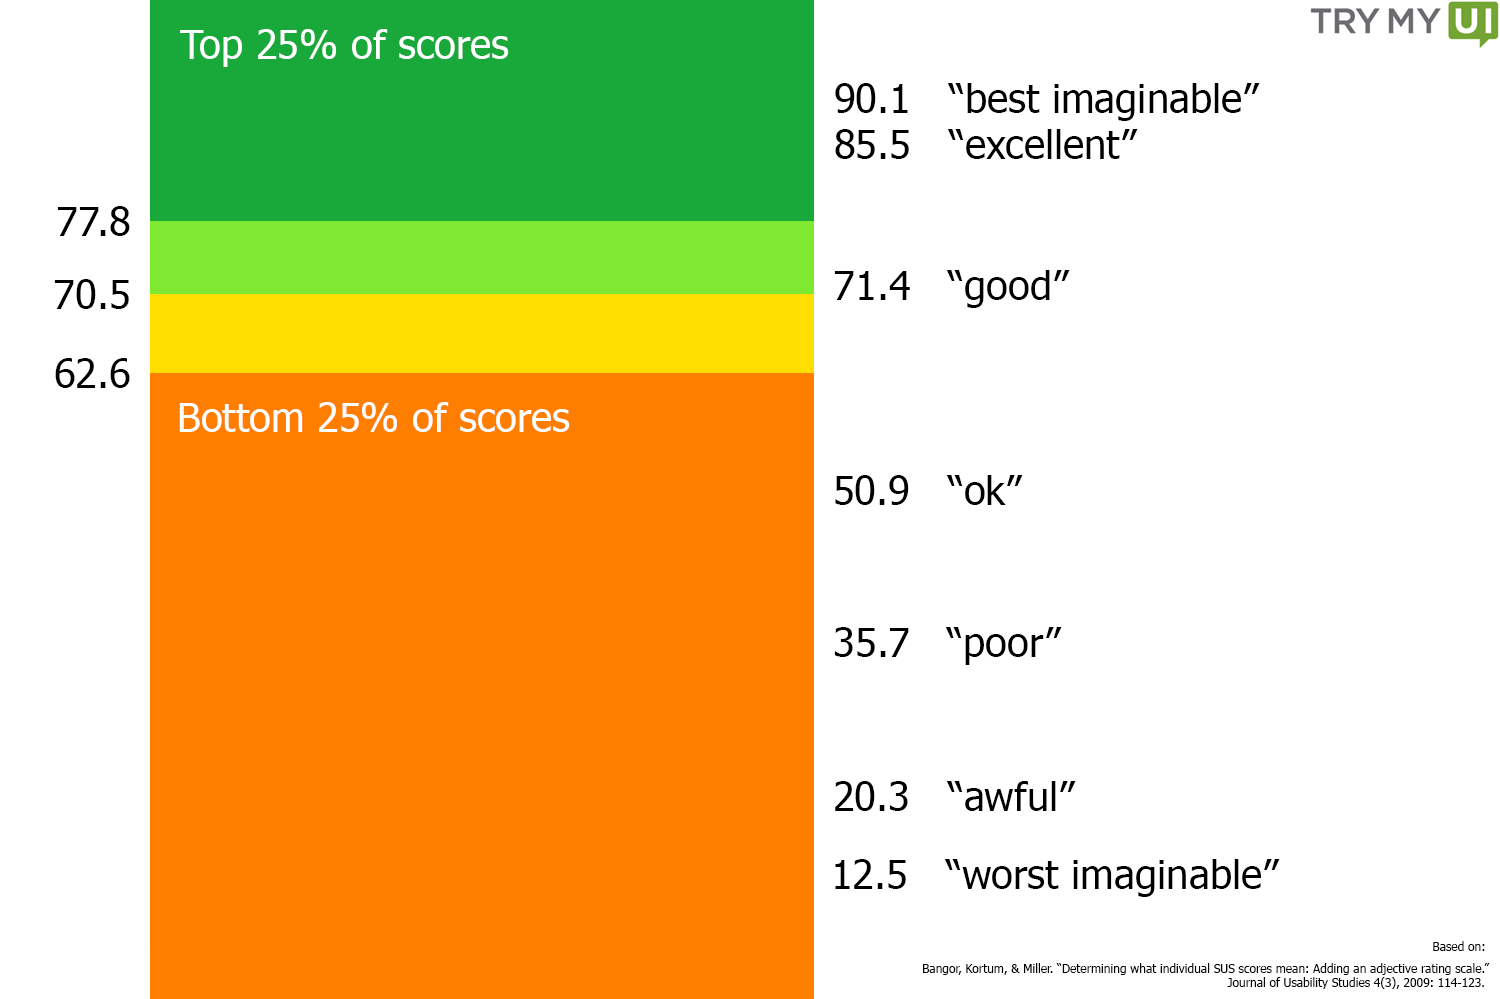 SUS scores with labels and visual breakdown